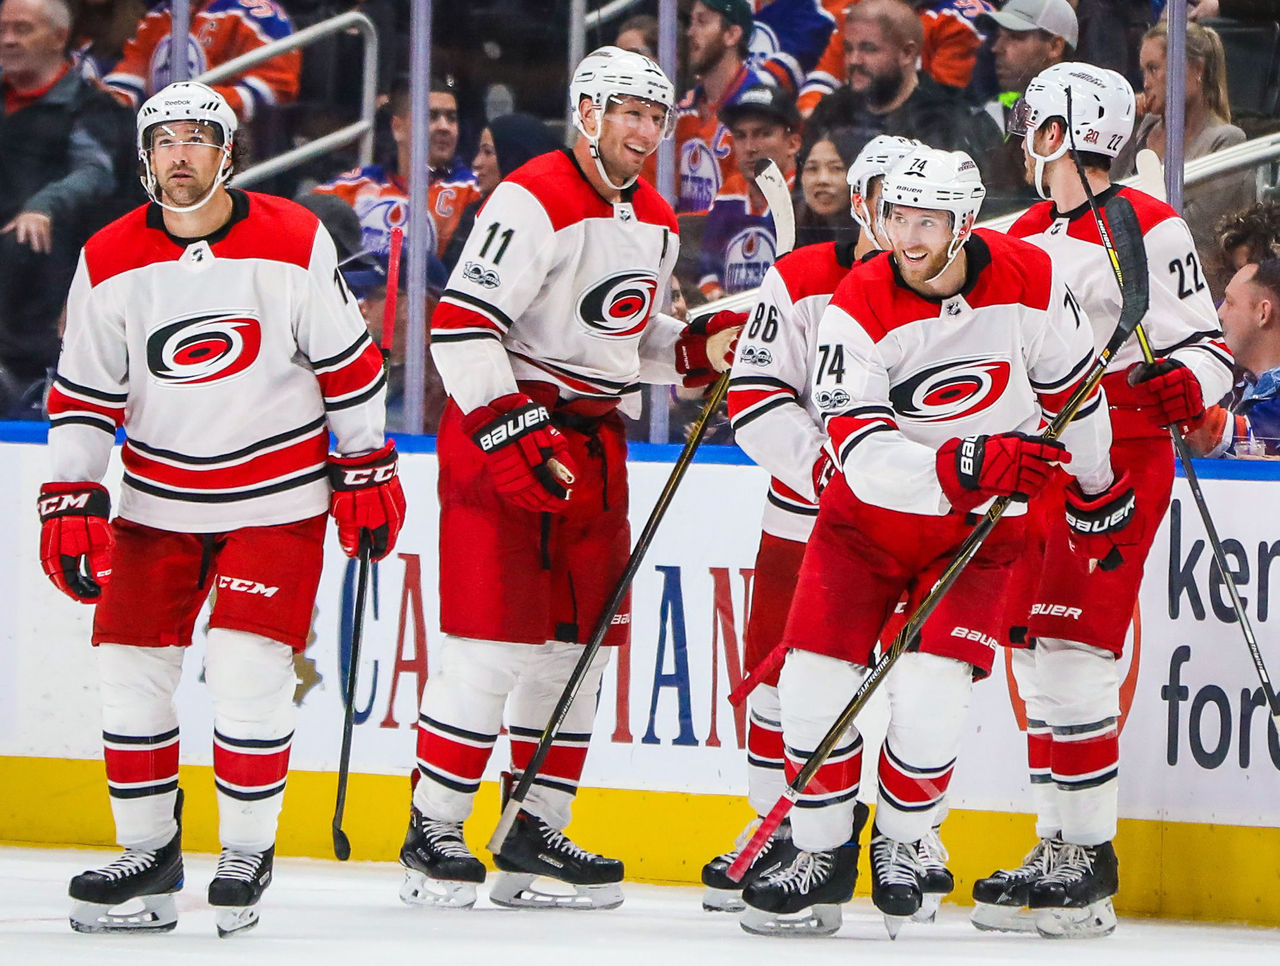 Cropped 2017 10 18t040414z 1407845598 nocid rtrmadp 3 nhl carolina hurricanes at edmonton oilers